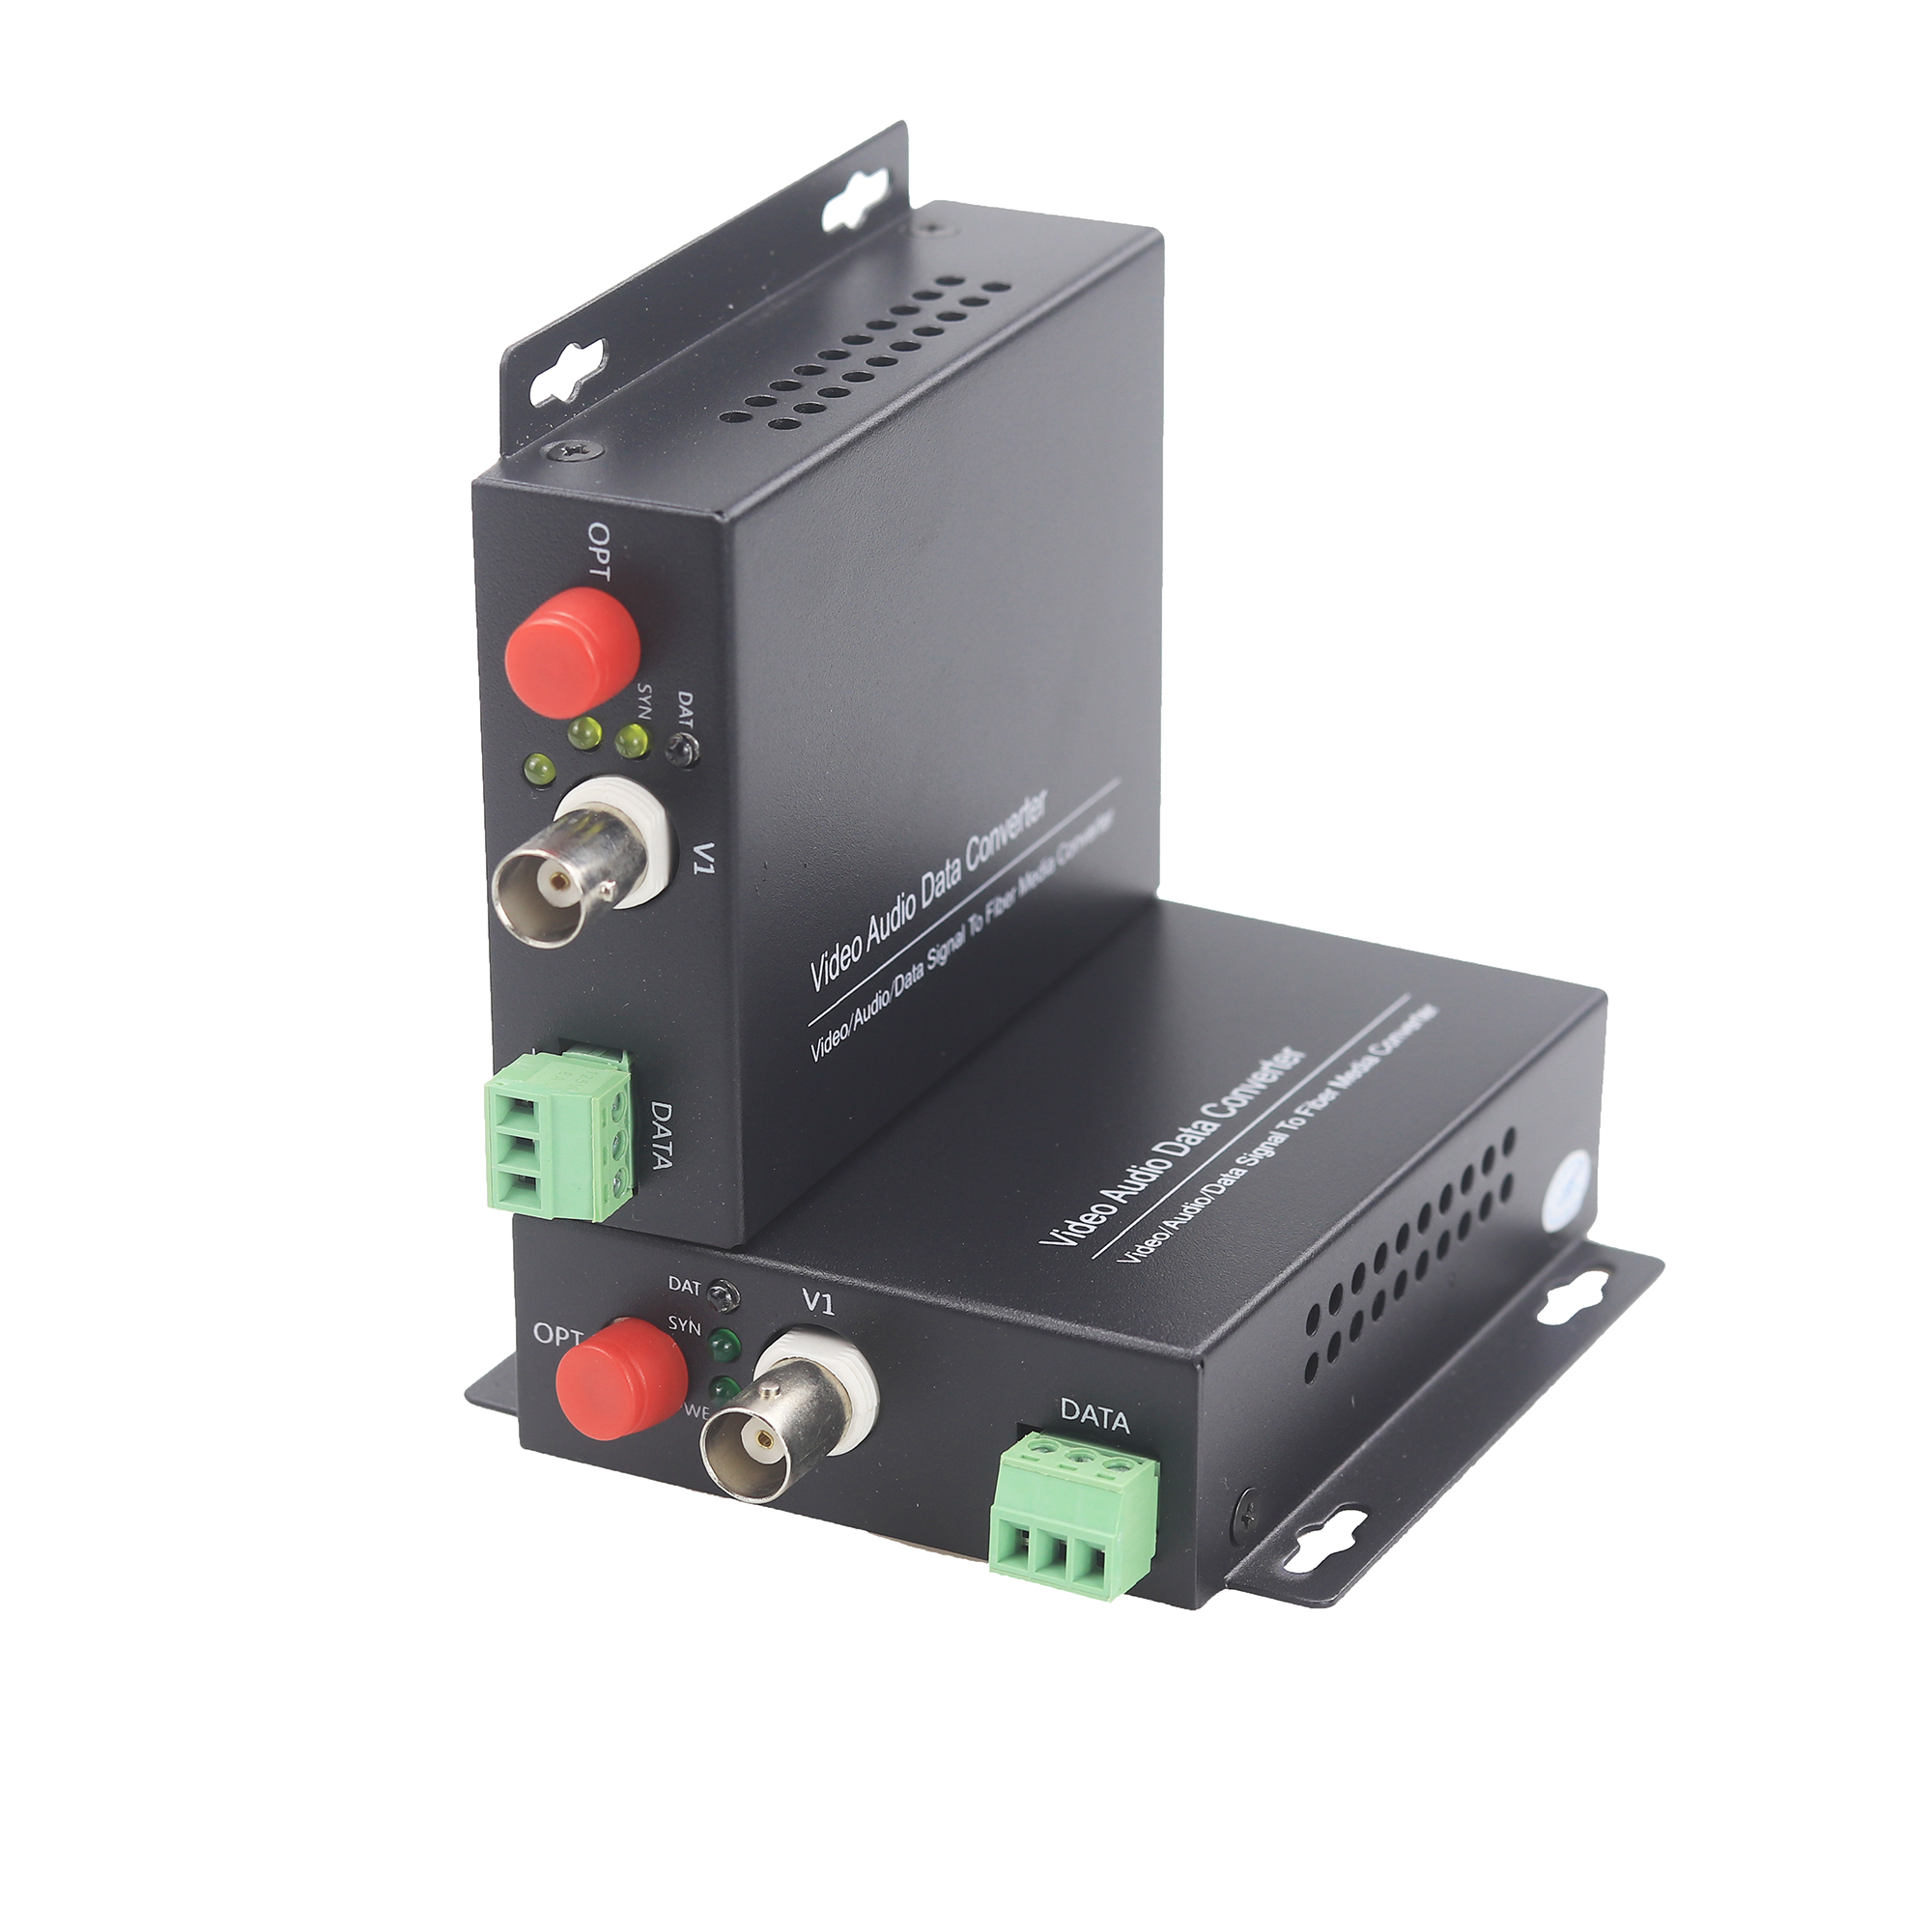 GZGMET 20Km 1 Channel Video Extender Single Mode Fiber Optic Media Converter Video RS485 Data EXTENDER